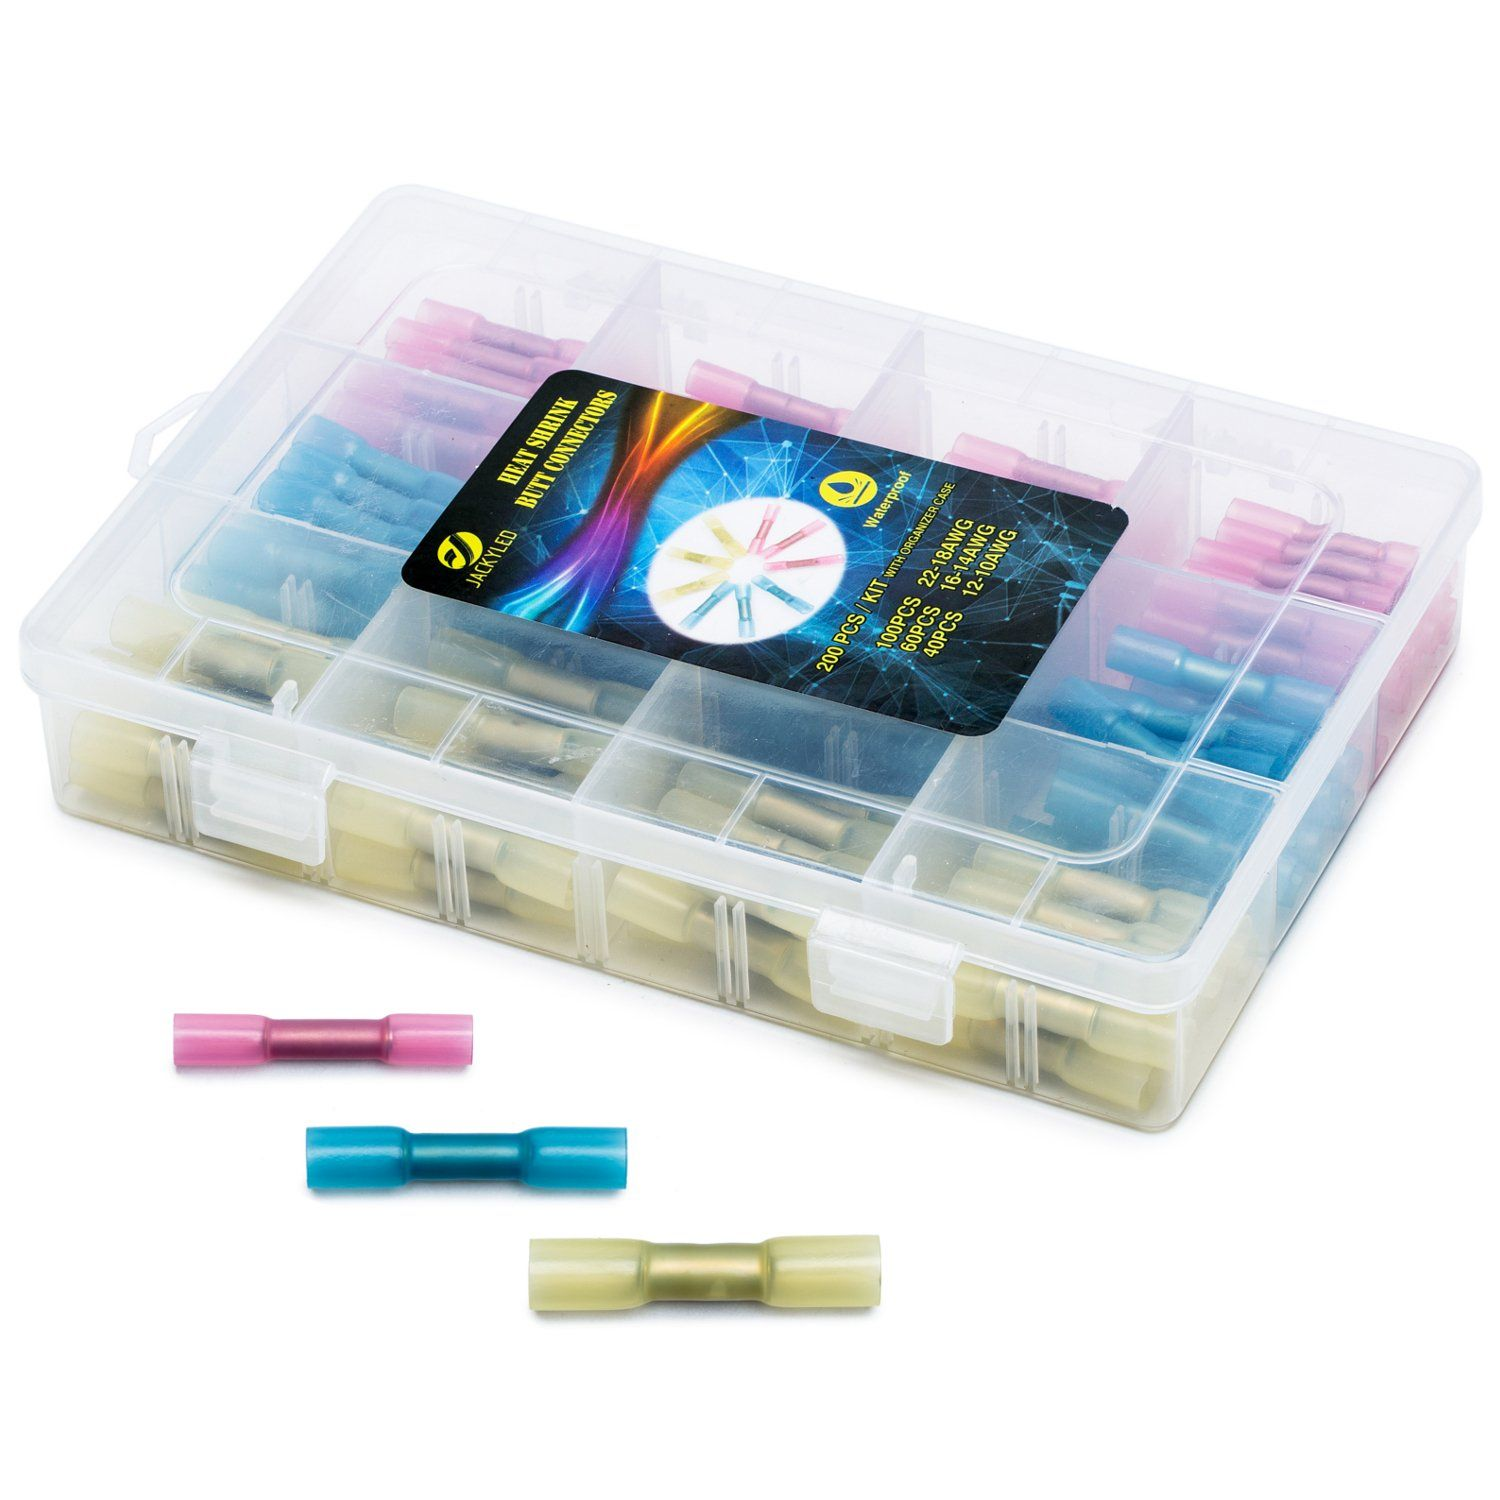 heat shrink butt connectors kit jackyled 200pcs 22 10ga waterproof seal assorted electrical wire crimp terminals set 100red 60blue 40yellow  [ 1500 x 1500 Pixel ]